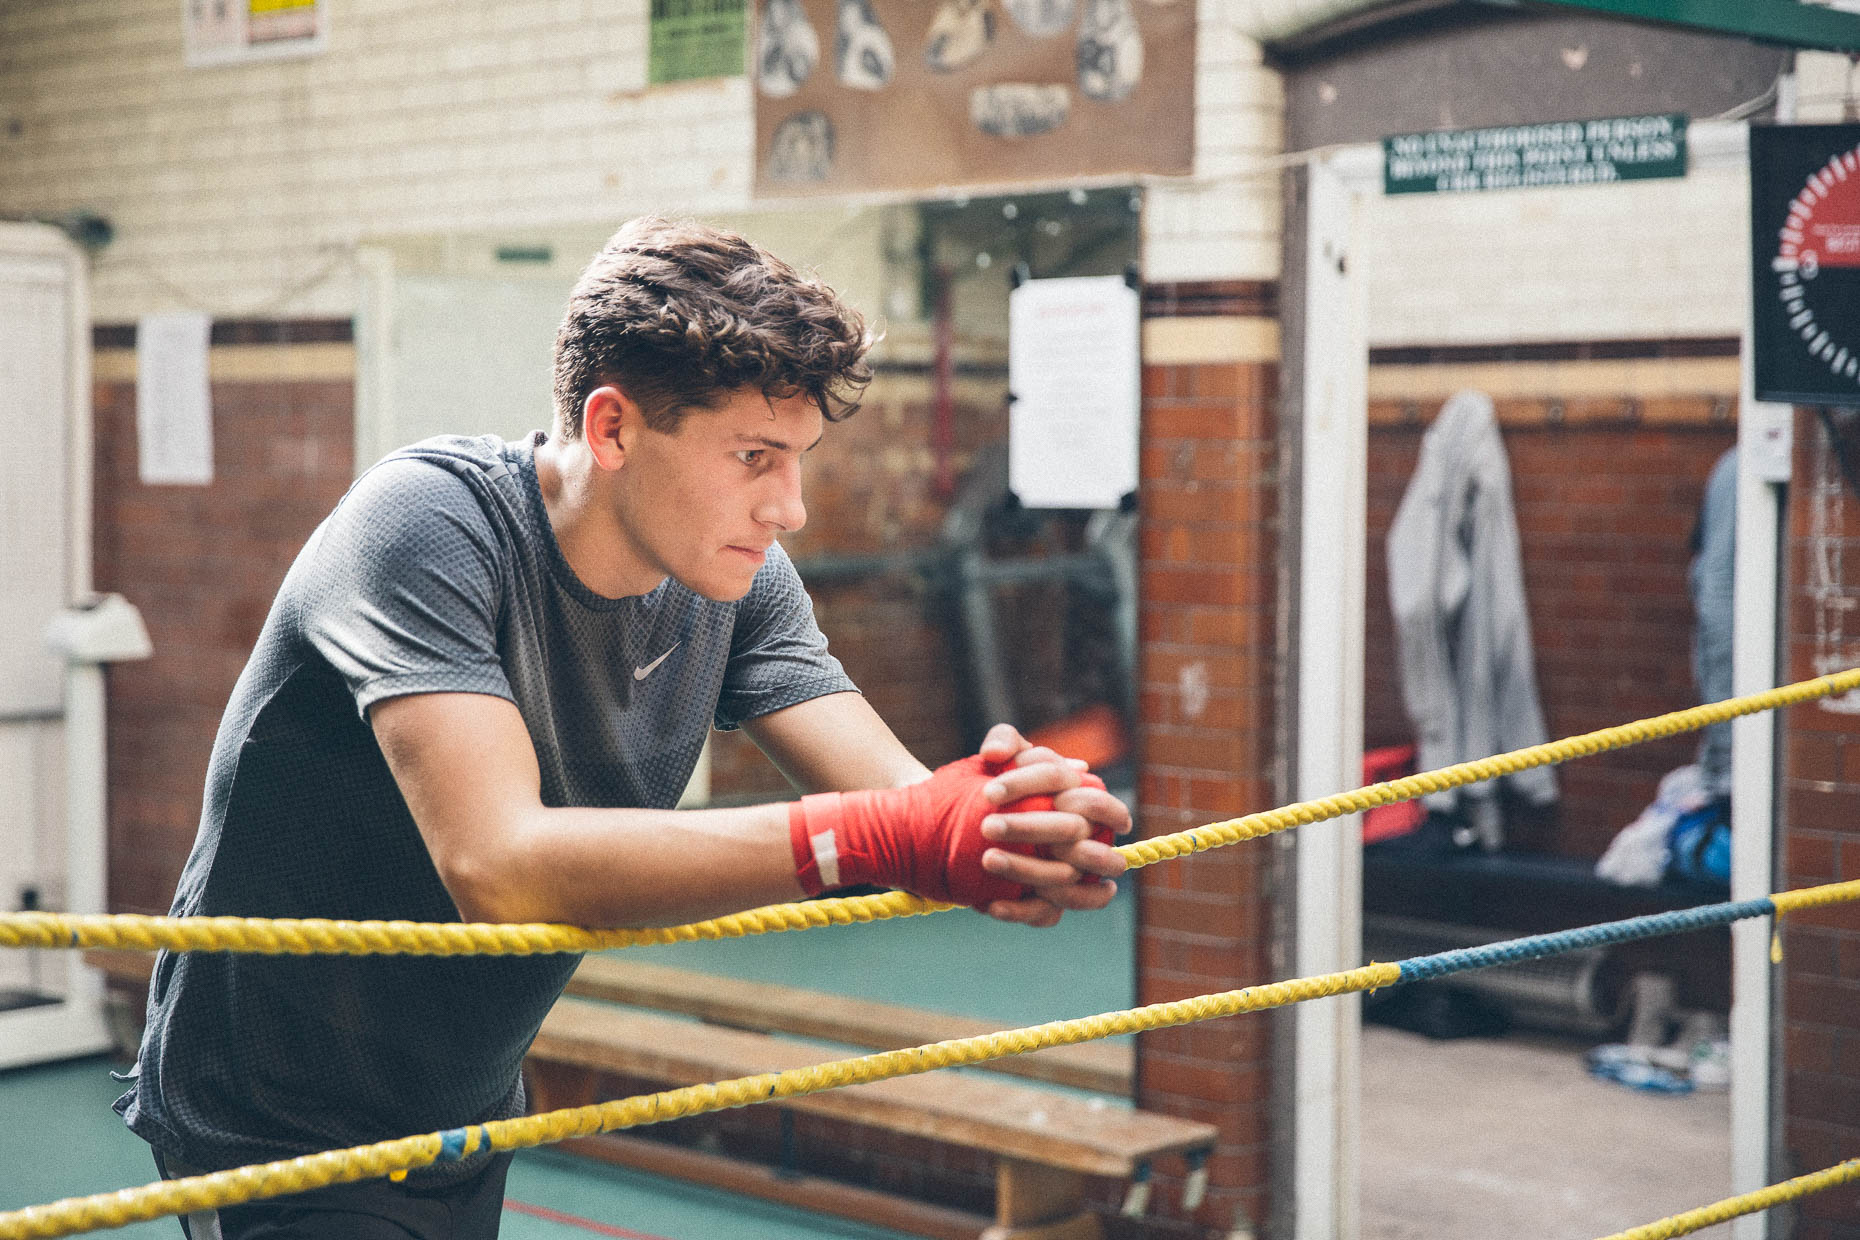 045_JulianLove_London_Lifestyle_Photographer_Boxing Sport